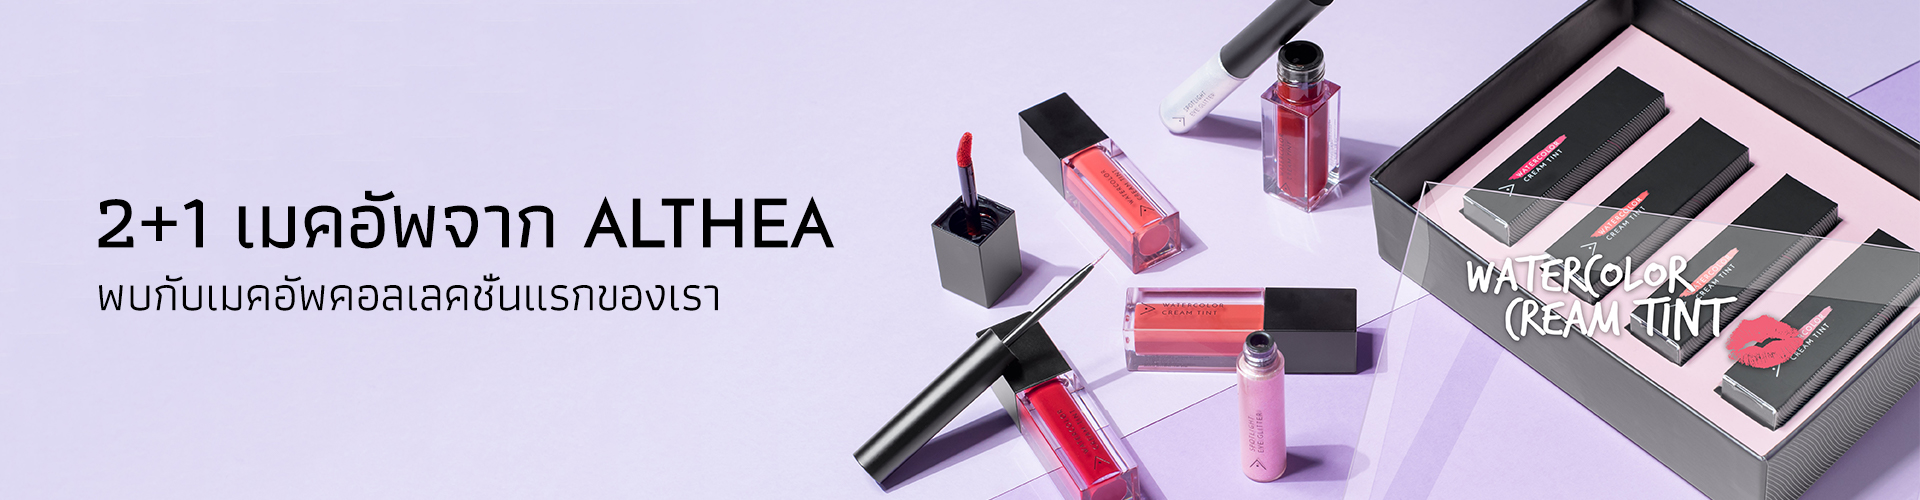 Althea Exclusives Makeup Launch